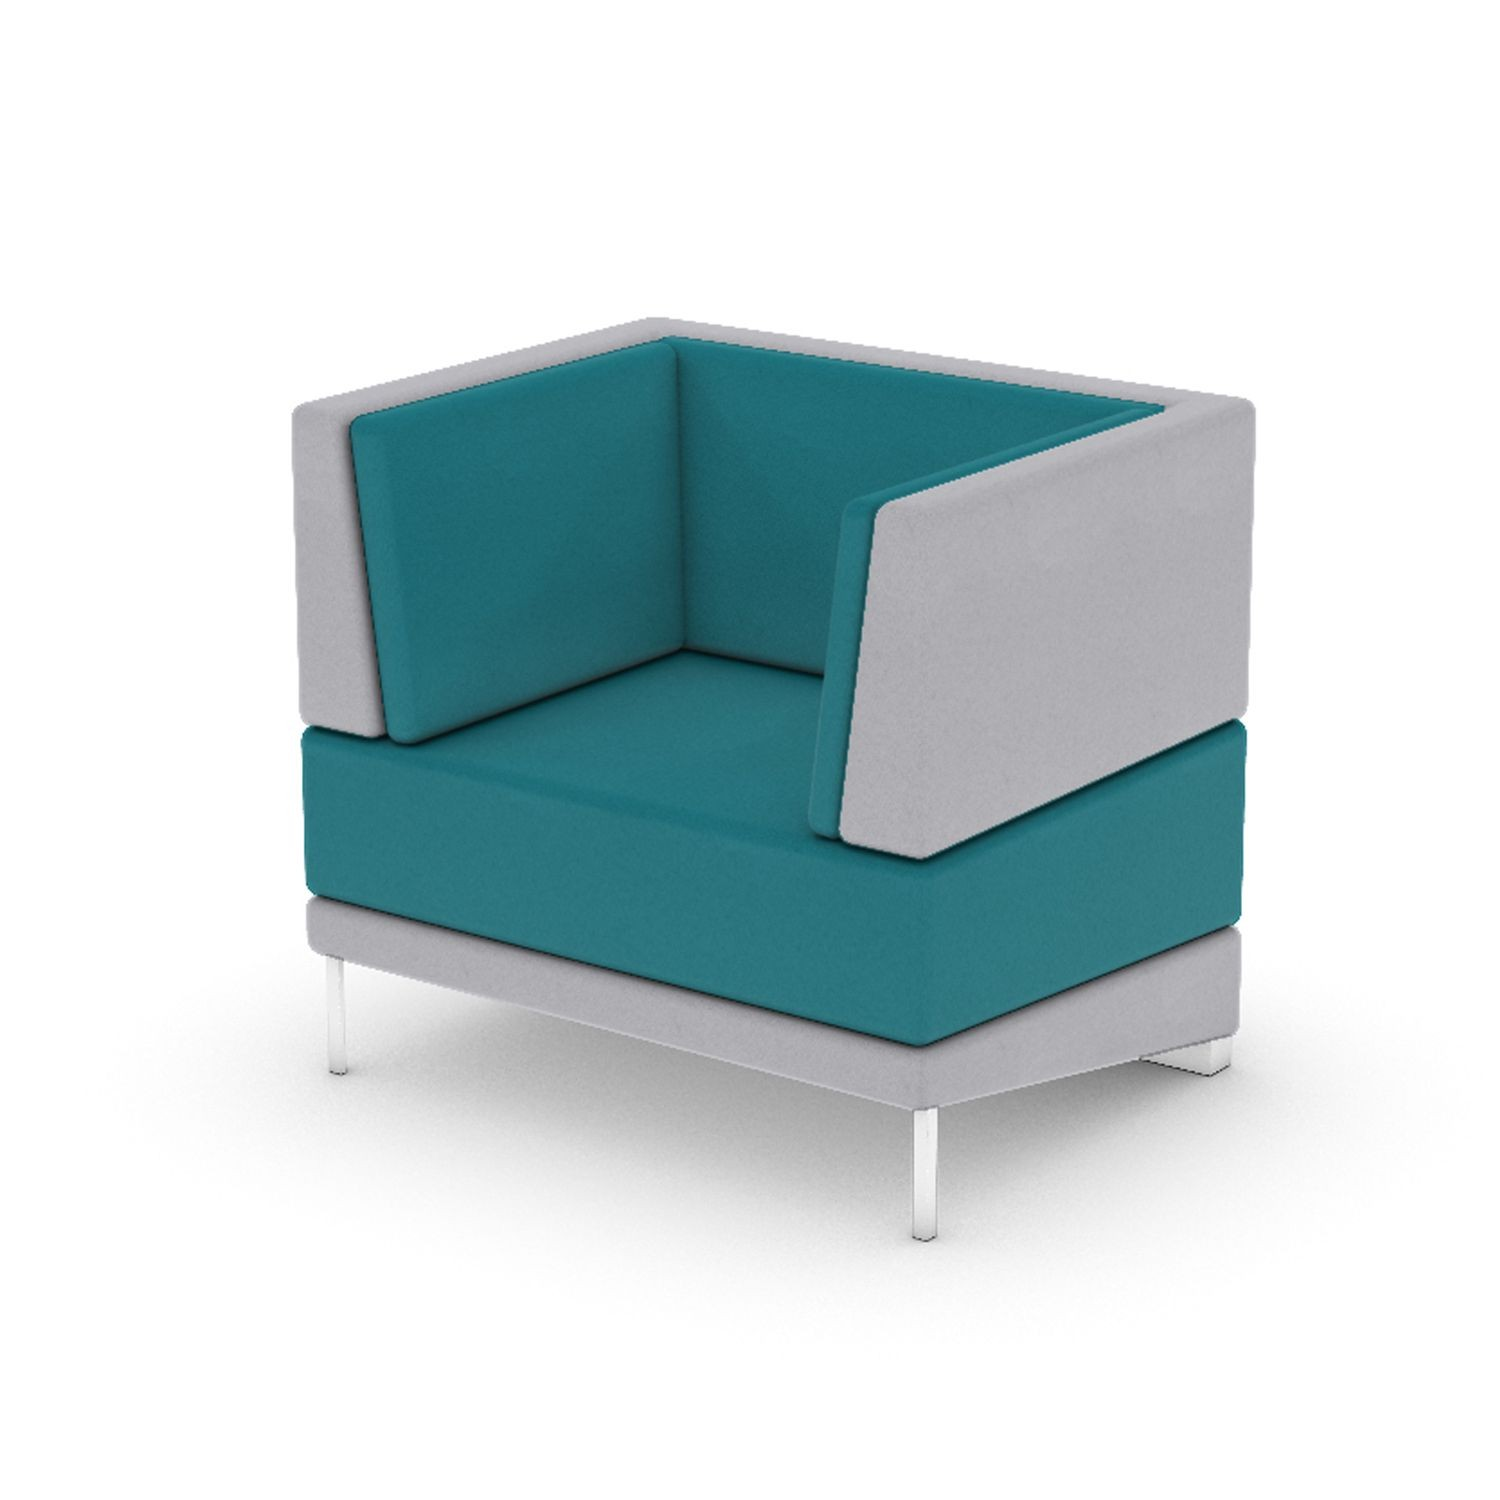 Soft Seating Mount Chair